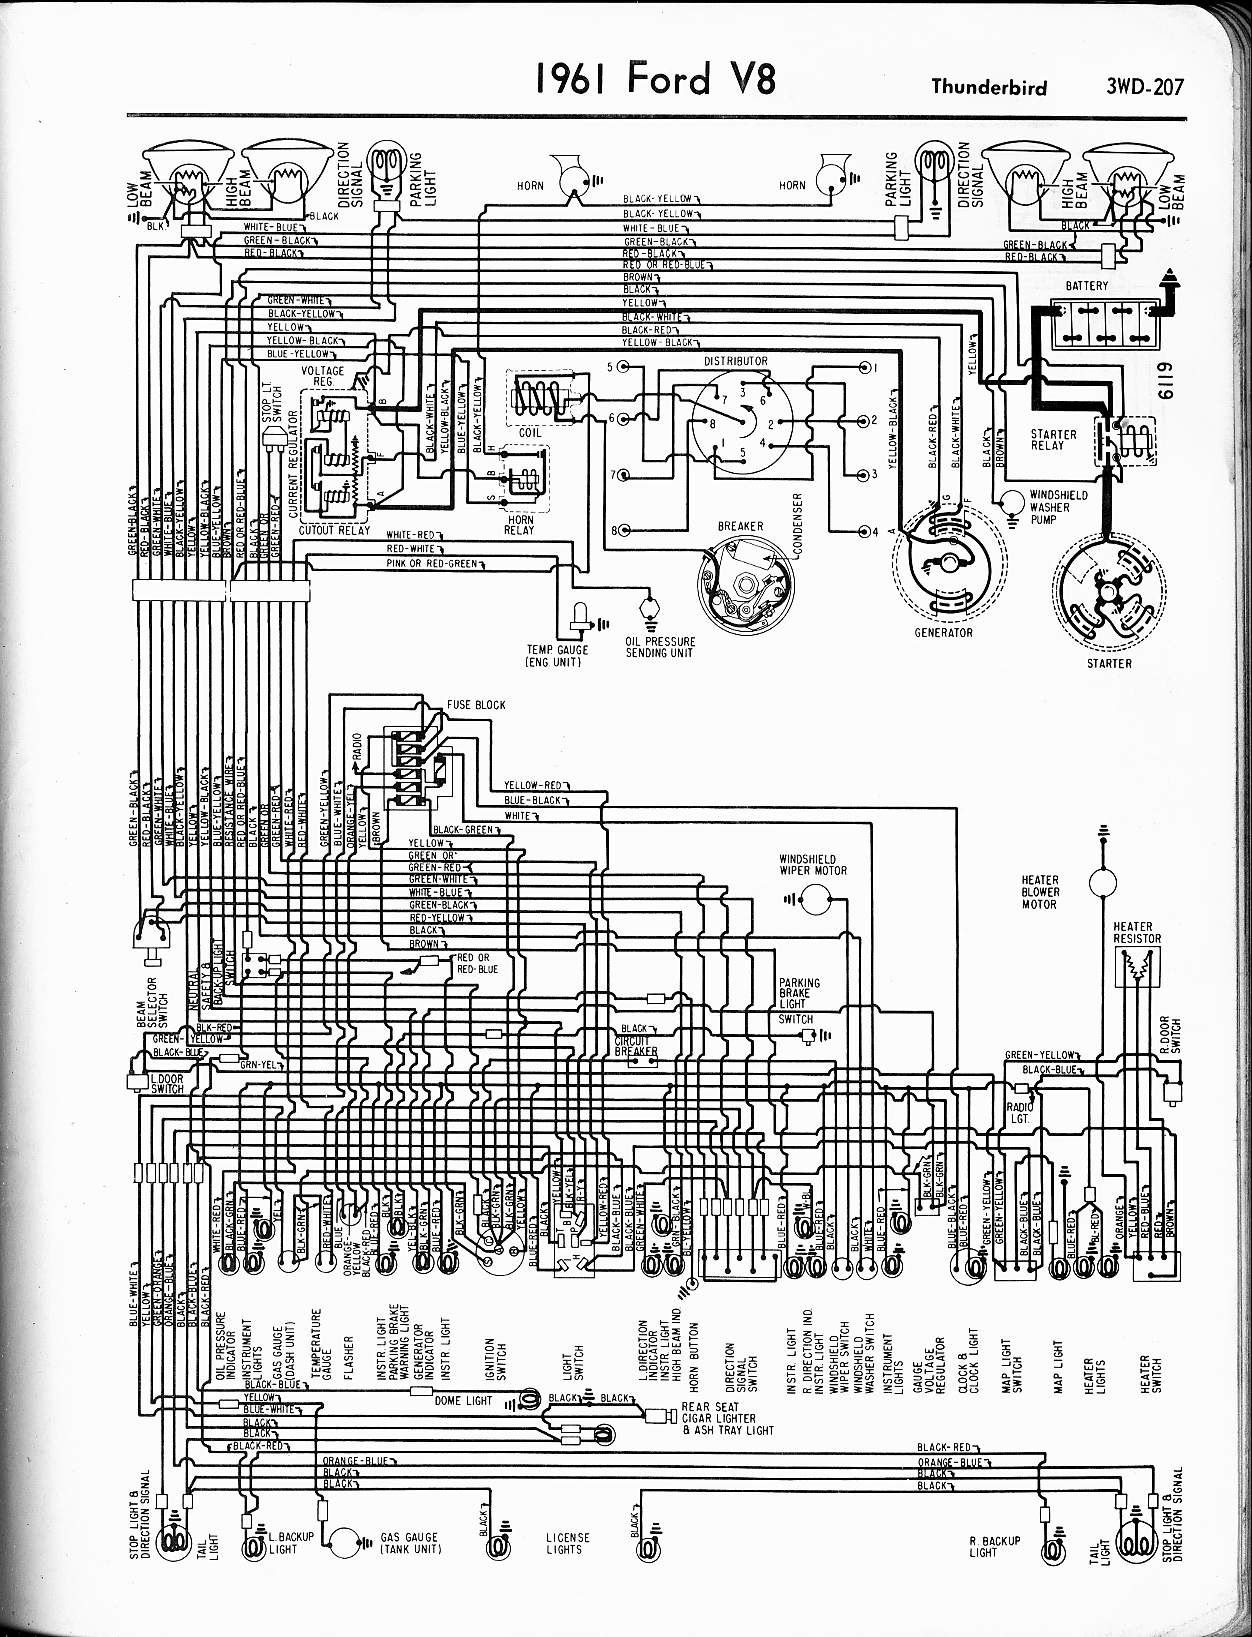 1956 thunderbird wiring schematic automotive wiring diagram u2022 rh nfluencer co 1956 t bird wiring diagram 1955 Thunderbird Wiring Diagram